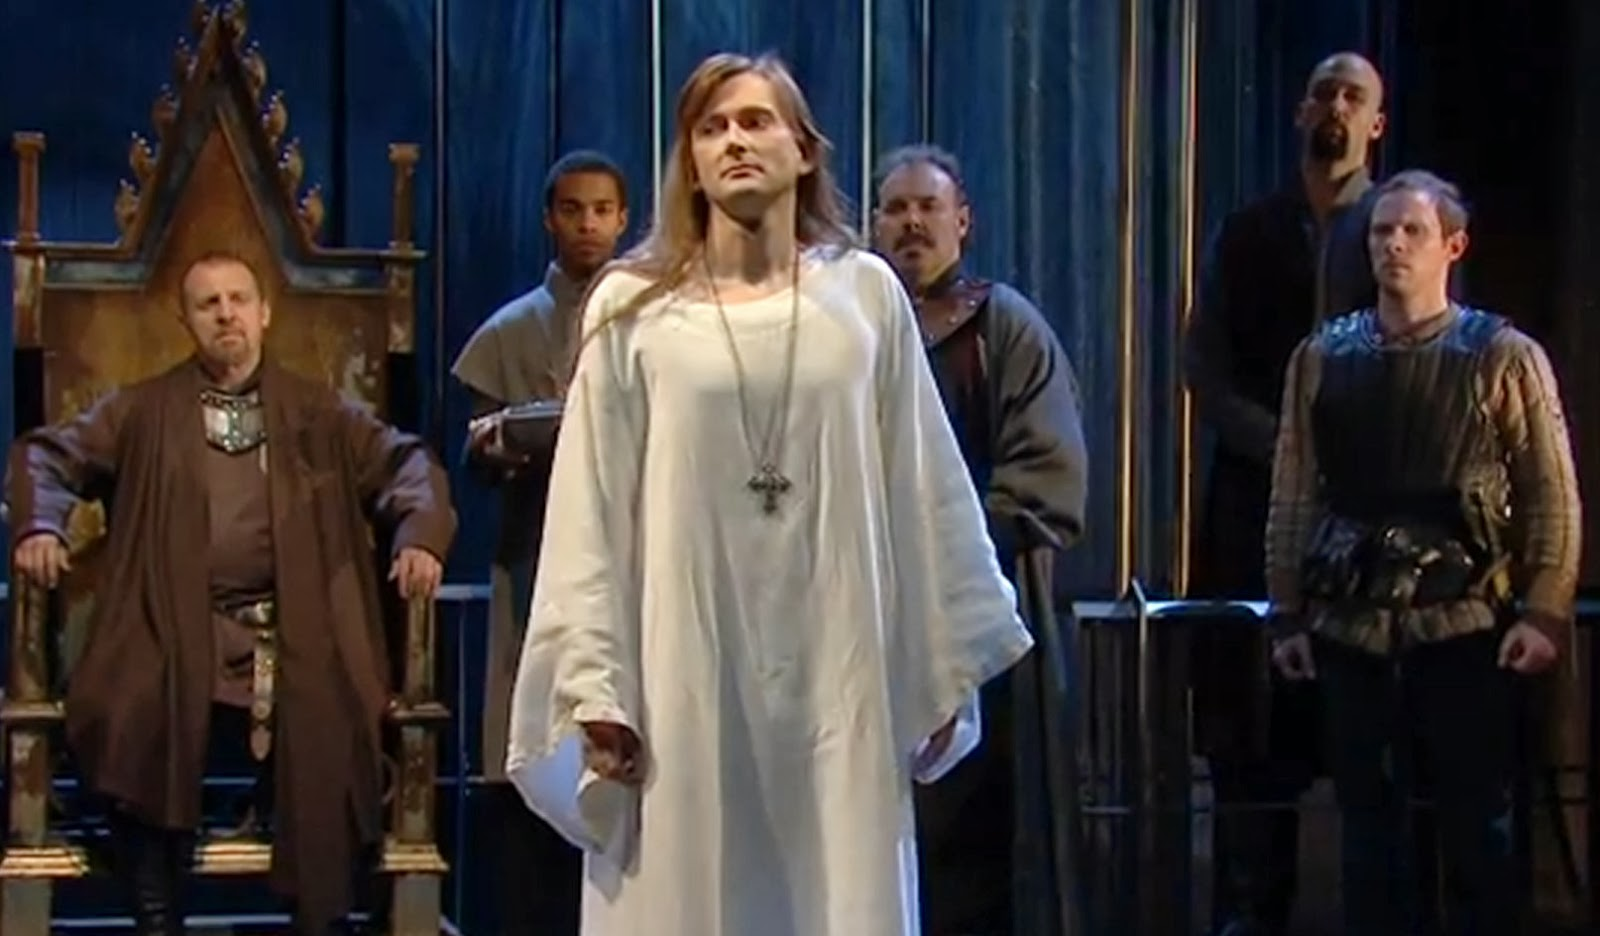 richard iis deposition in shakespeares play richard ii In richard ii, shakespeare's first  it is written entirely in verse and no apparent action aside from richard deposition  the descendant play of richard ii.